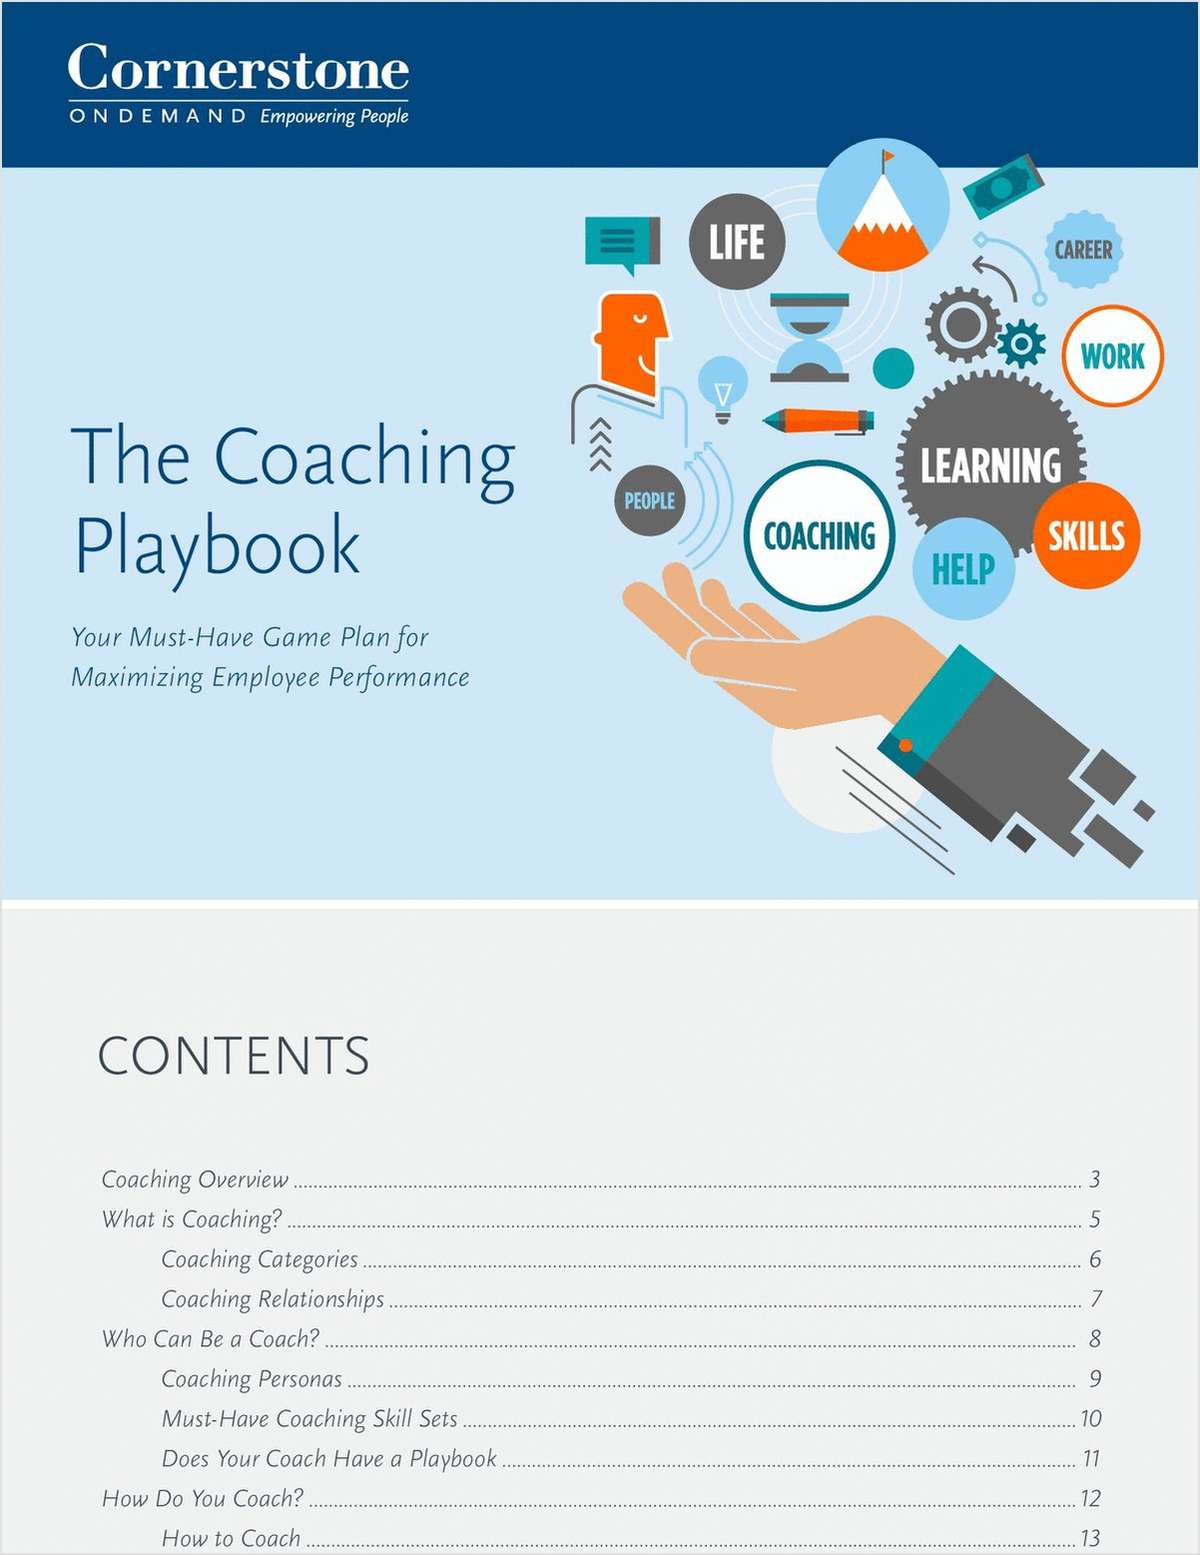 The Coaching Playbook: Your Must-Have Game Plan for Maximizing Employee Performance